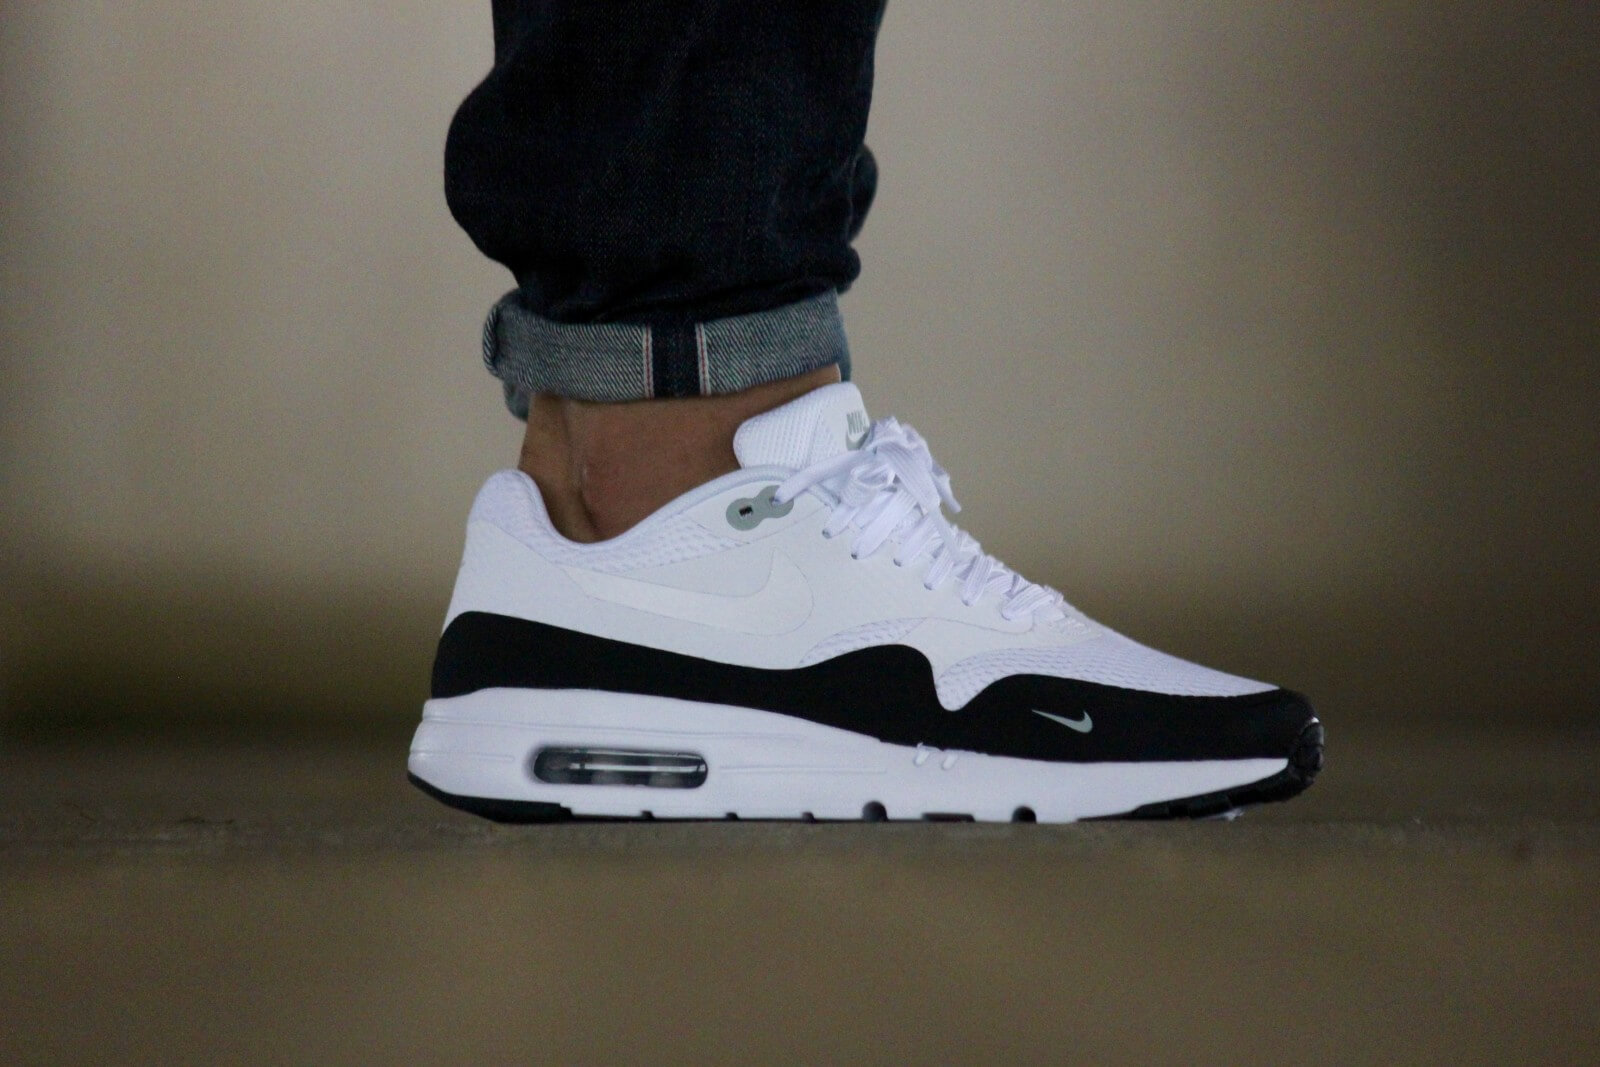 Nike Air Max 1 Ultra Essential White/Black/Wolf Grey